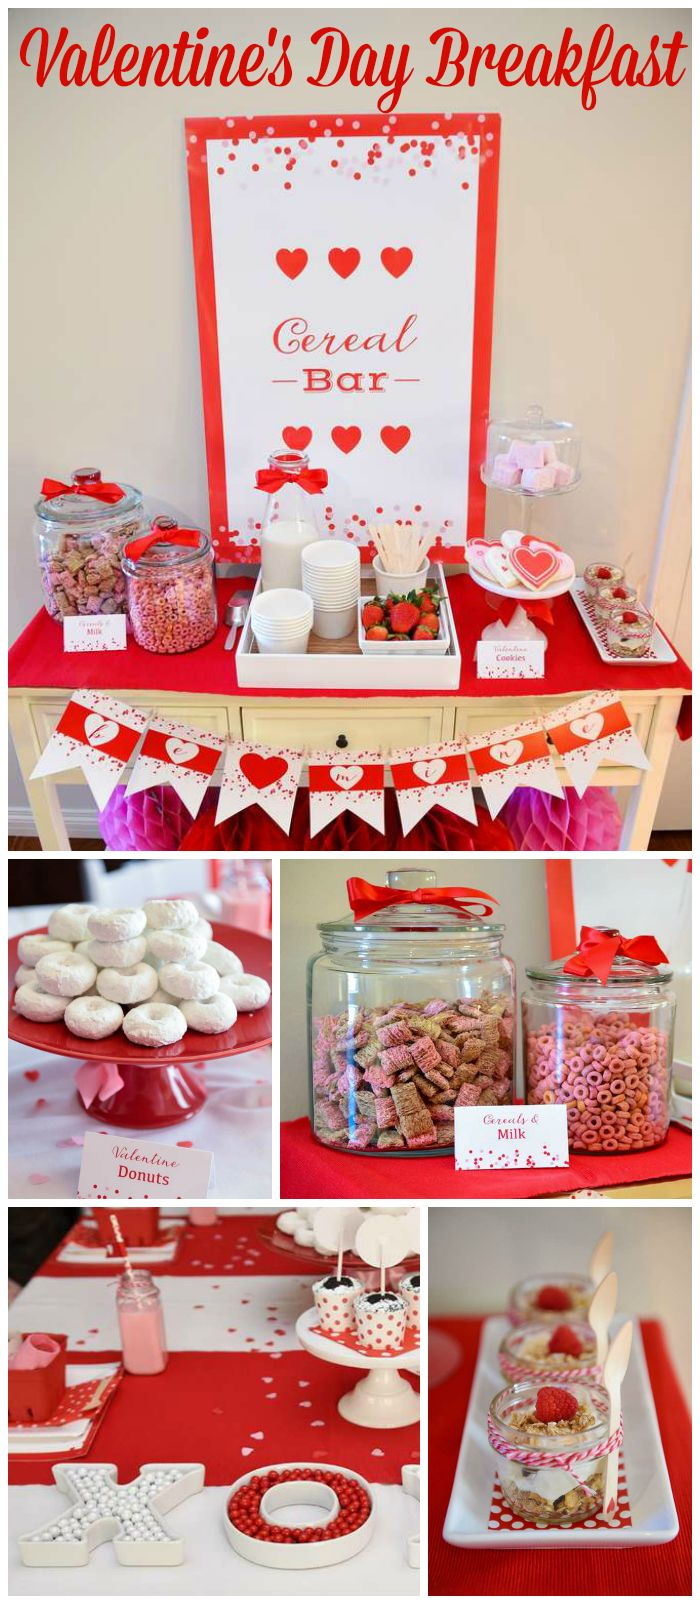 Valentine party ideas for church - A Valentine S Day Party With A Cereal Bar Fun Treats Include Cereals Berries And